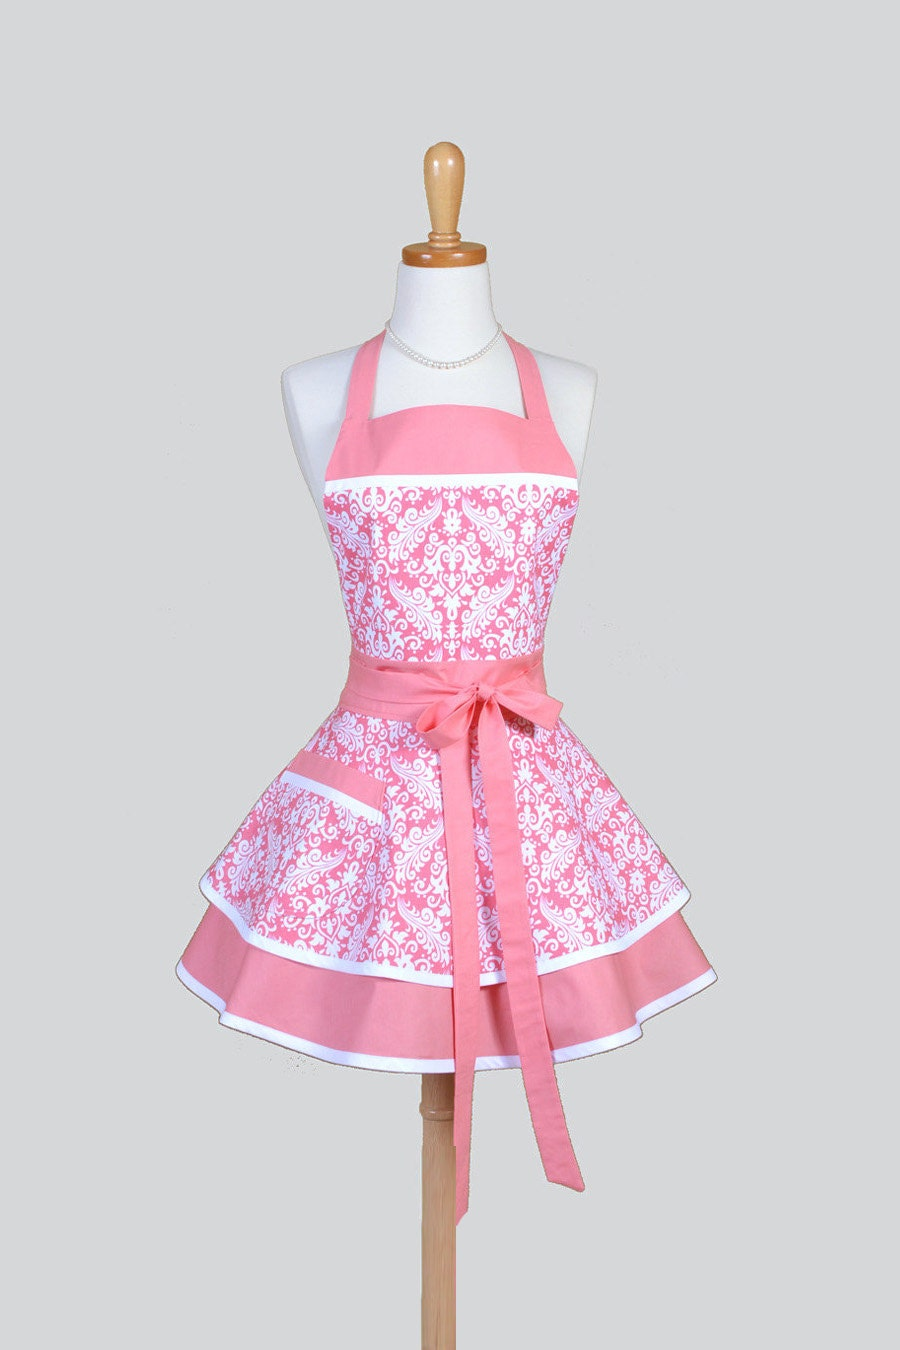 Ruffled Retro Aprons Cute Vintage Kitchen Womans Apron in